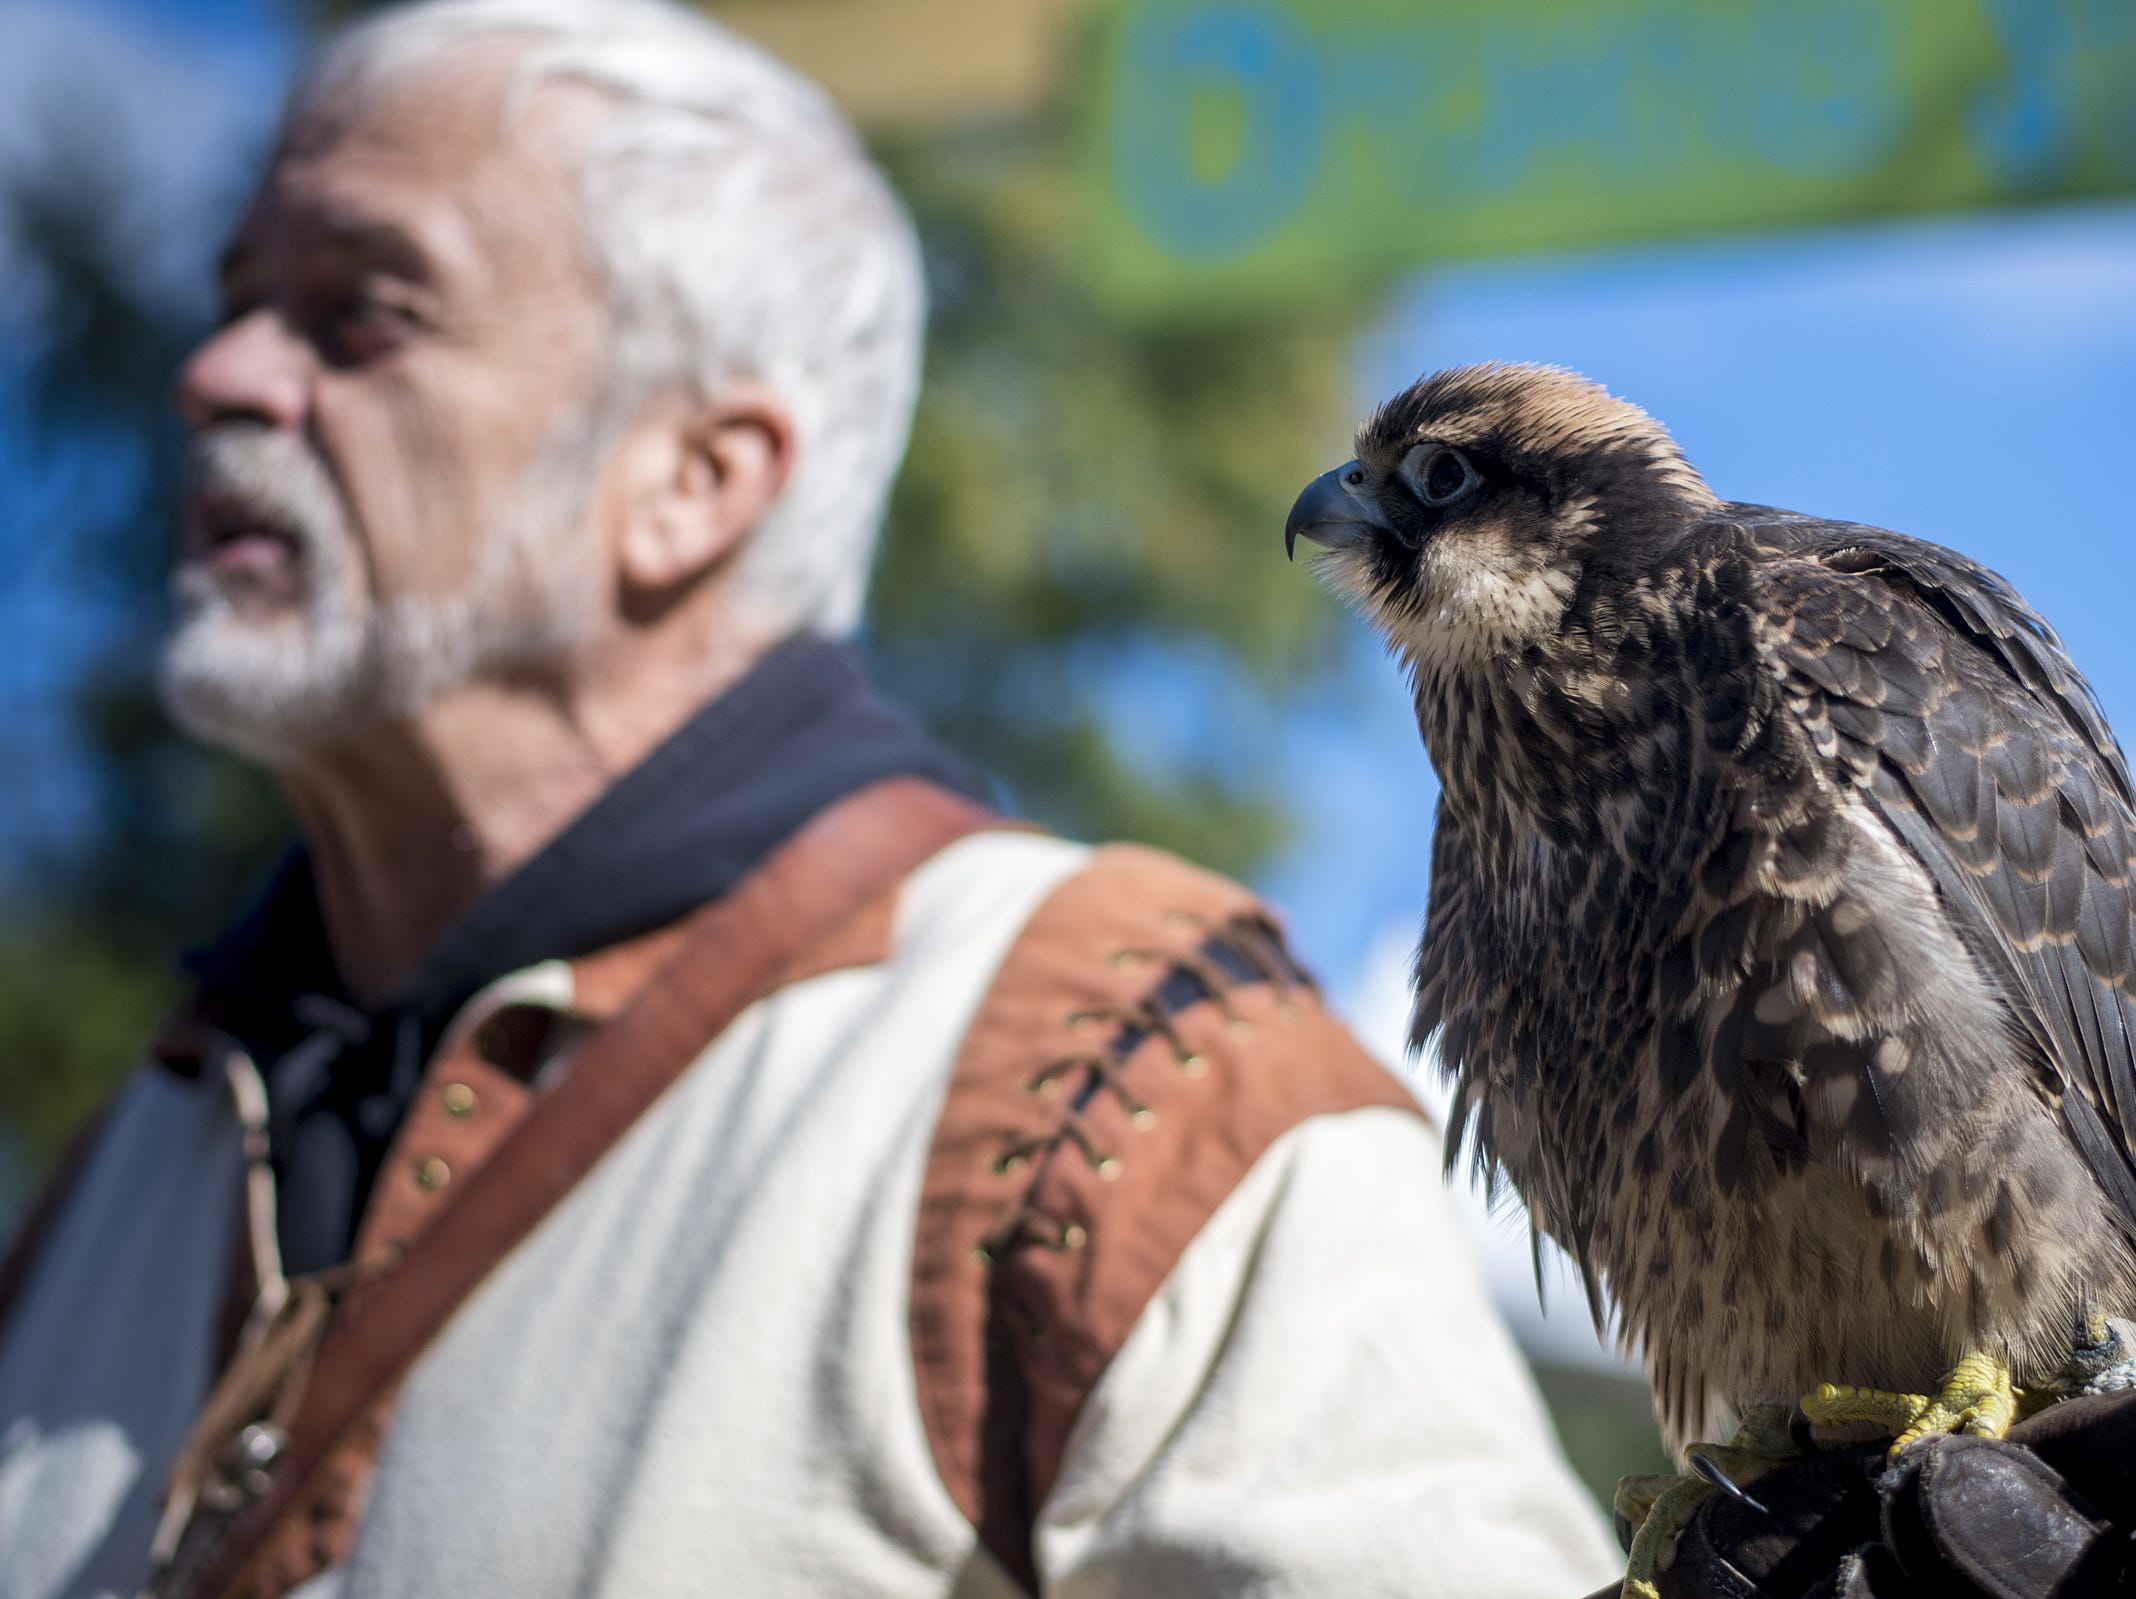 Gary Denzler holds a Lanner falcon during Romance Weekend at the Ohio Renaissance Festival Sunday, October 21, 2018 in Waynesville, Ohio.